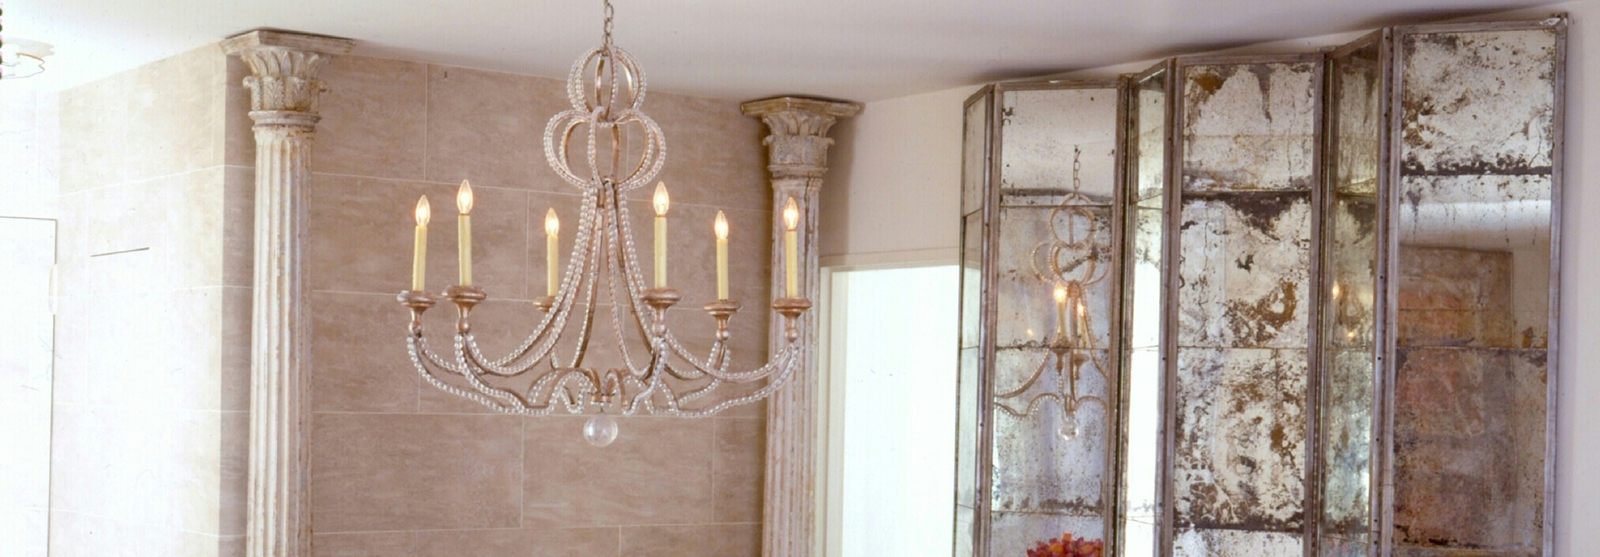 Niermann Weeks Lighting, Furniture And Accessories Within Newest Antique Mirror Chandelier (View 12 of 15)